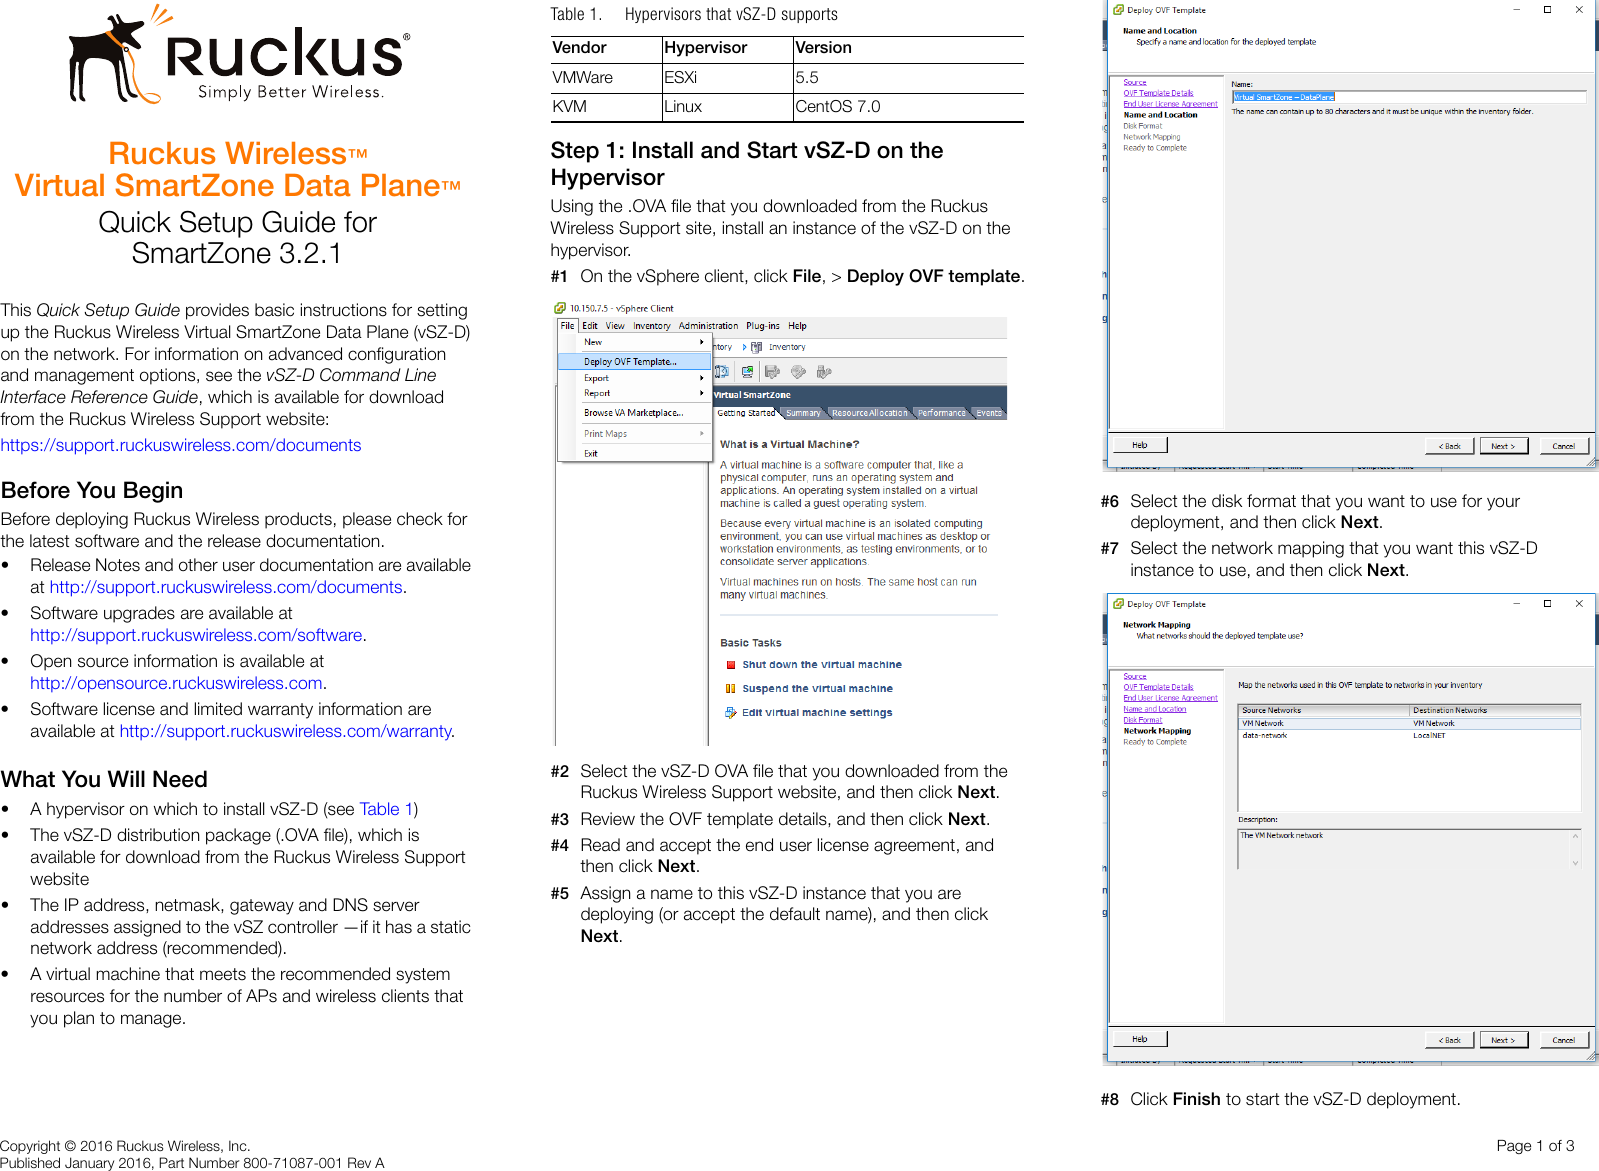 Ruckus Virtual SmartZone Data Plane (vSZ D™) Quick Setup Guide For